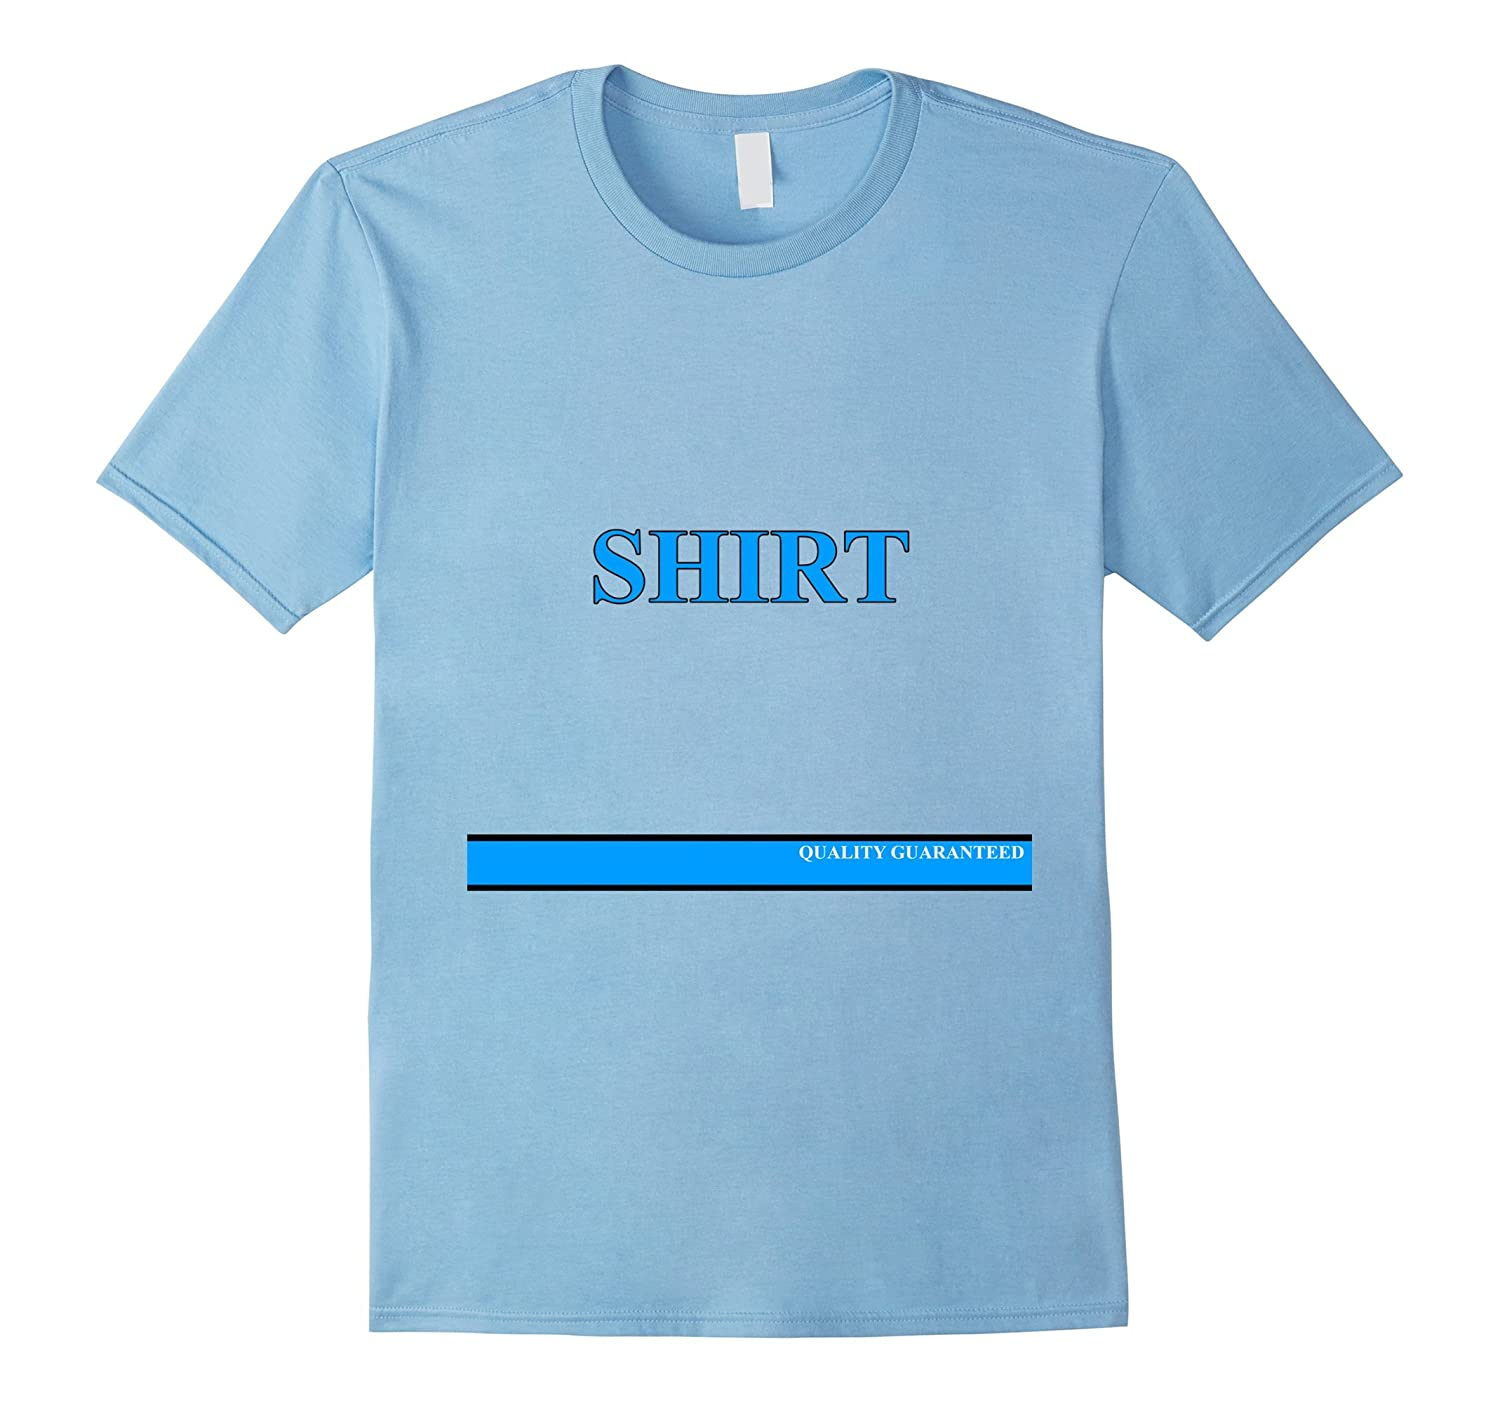 Generic Brand Short Sleeve Adult and Kids T-Shirt-T-Shirt